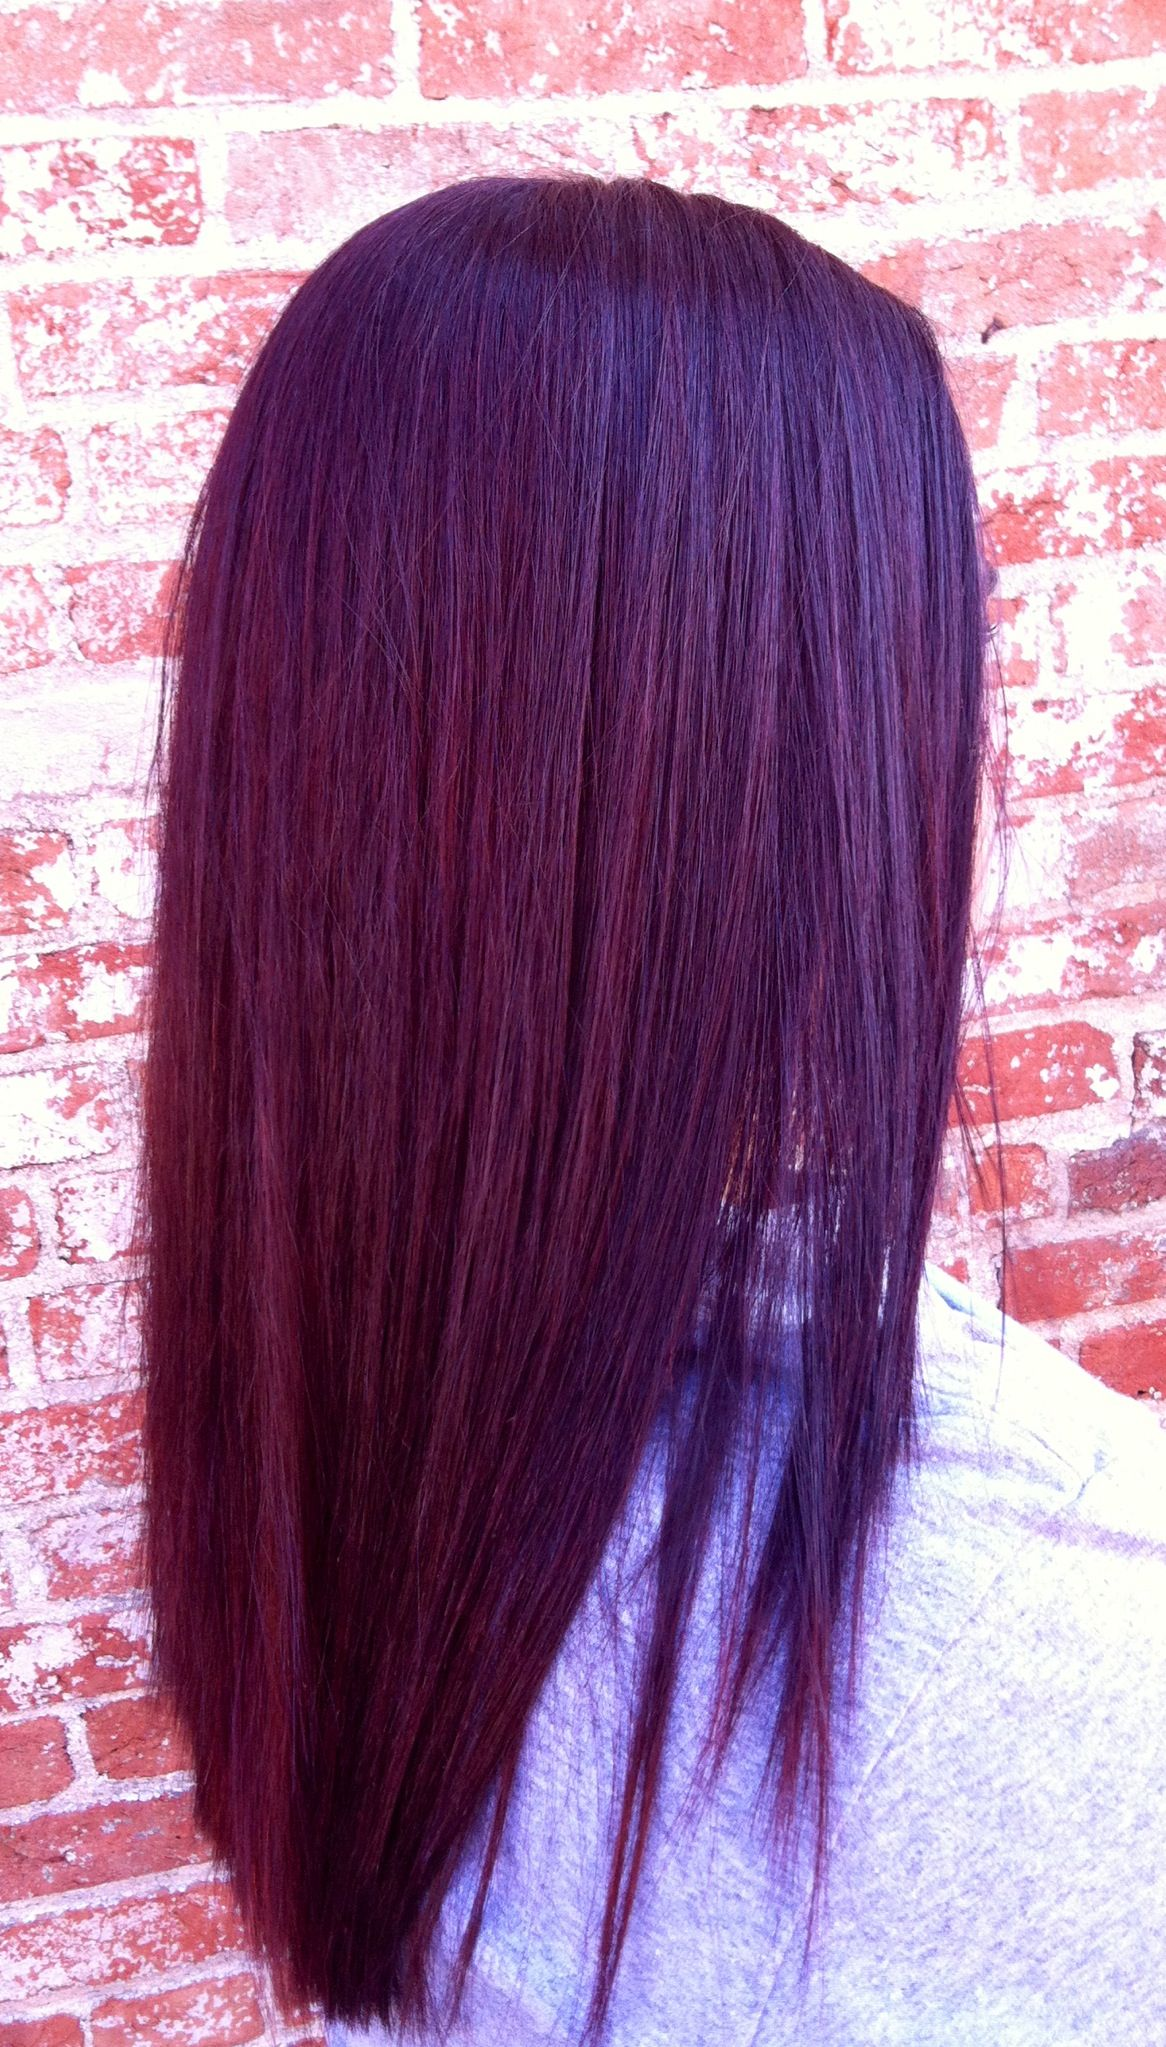 Kenra Color 4rr 6r And Red Booster Beautiful Shine And Amazing Color Kenracolor